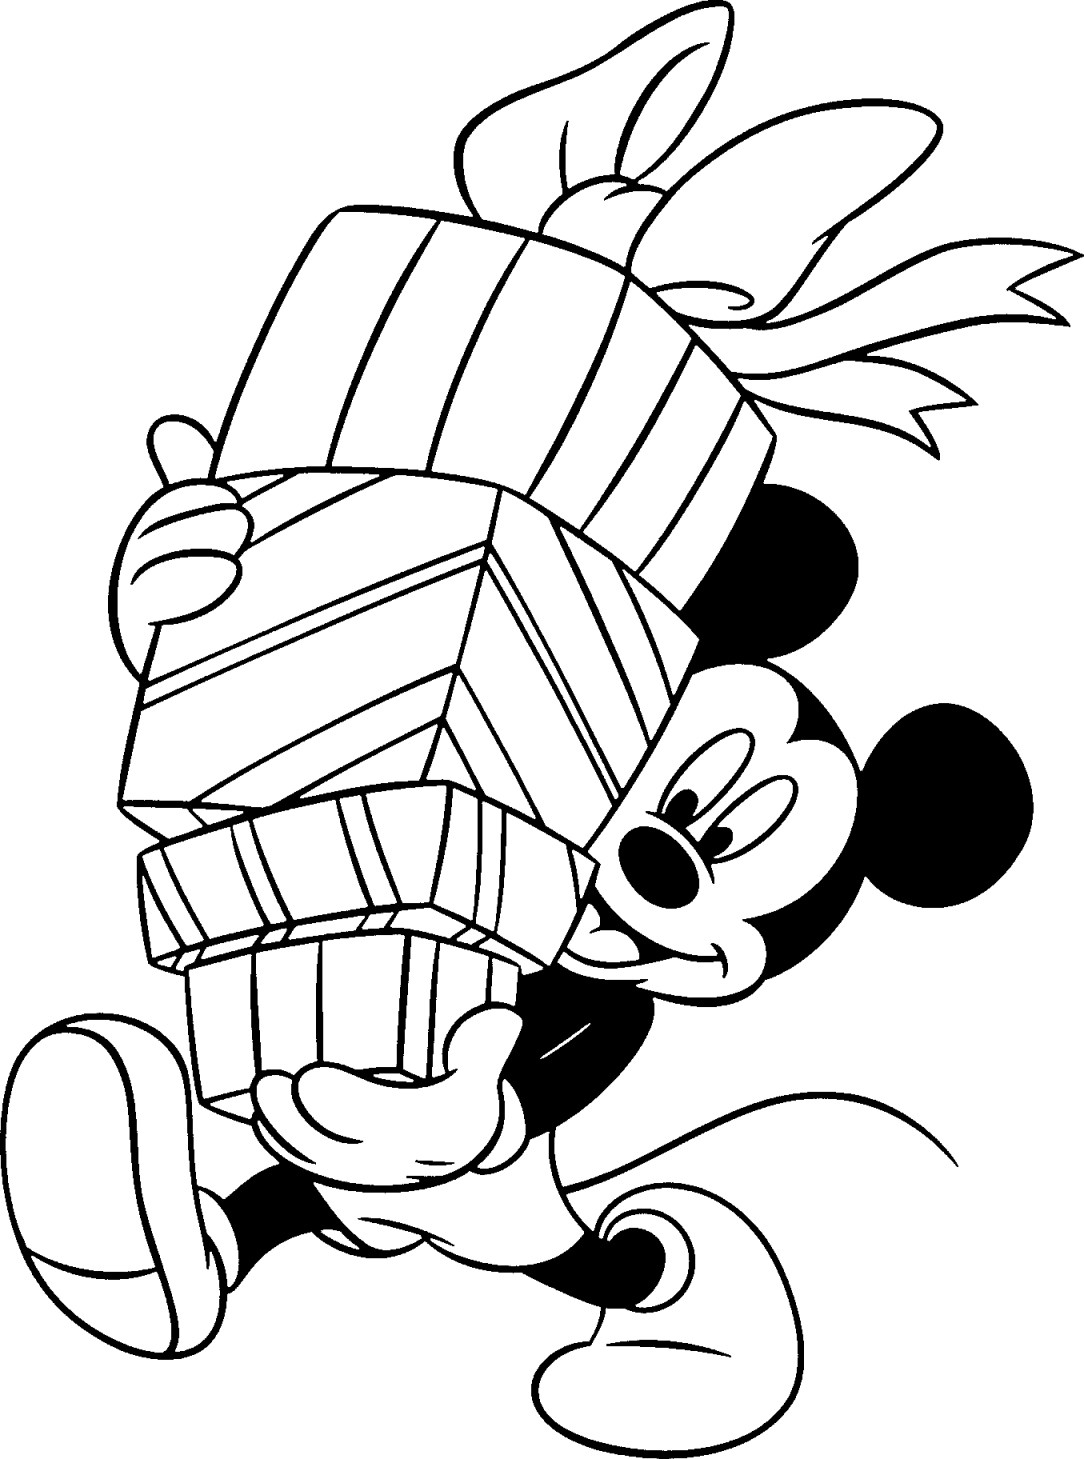 mickey mouse toddler coloring pages free disney christmas printable coloring pages for kids mouse toddler pages coloring mickey